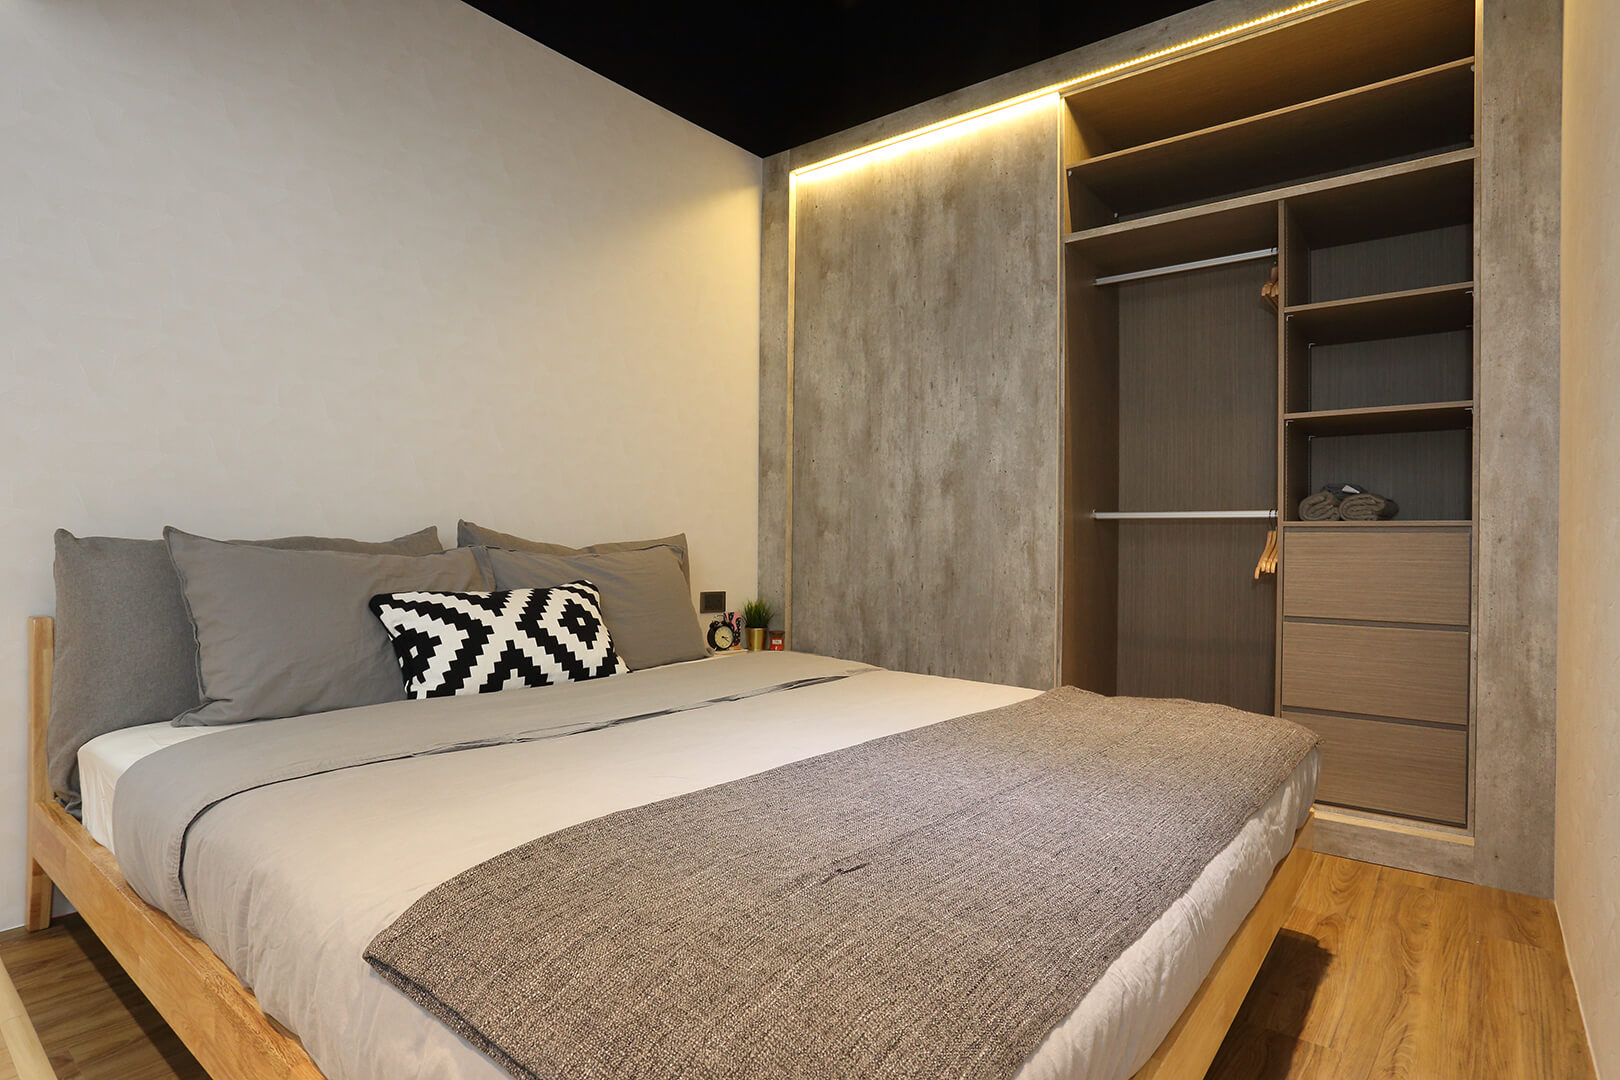 Monoloft's Design Studio Renovation Master Bedroom with Wardrobe on Side